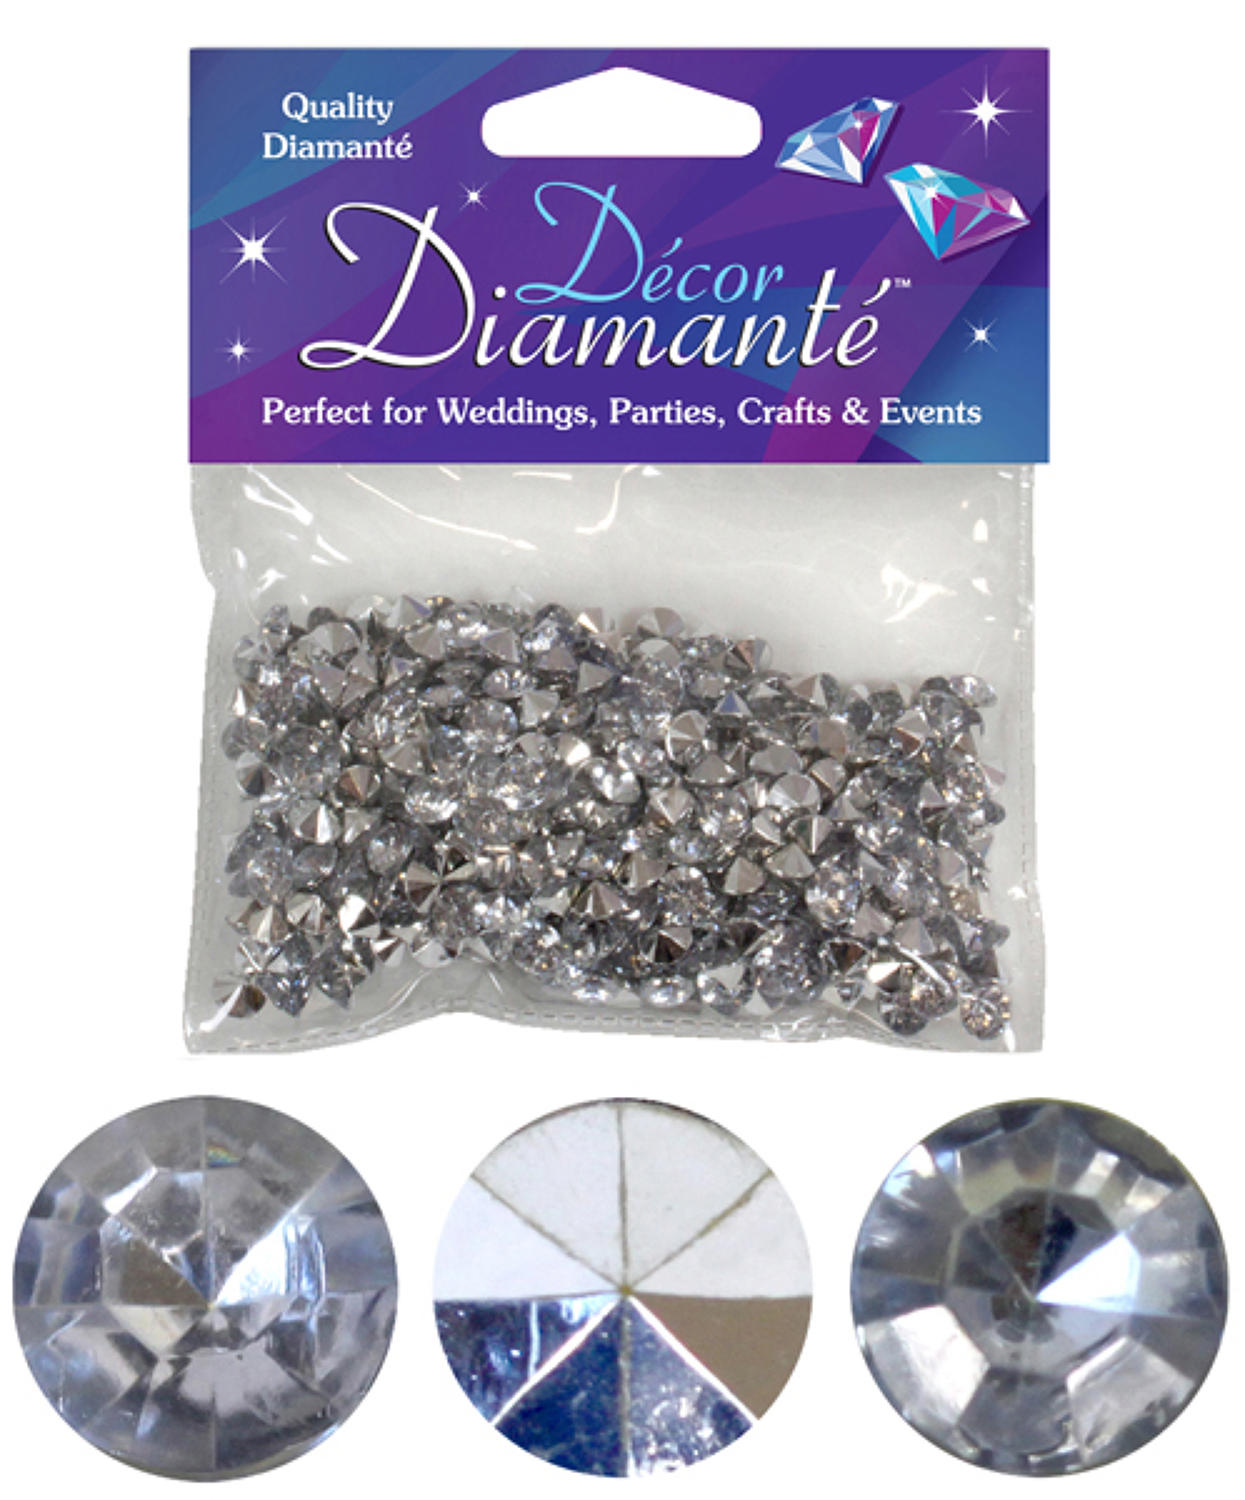 Silver Diamante gems